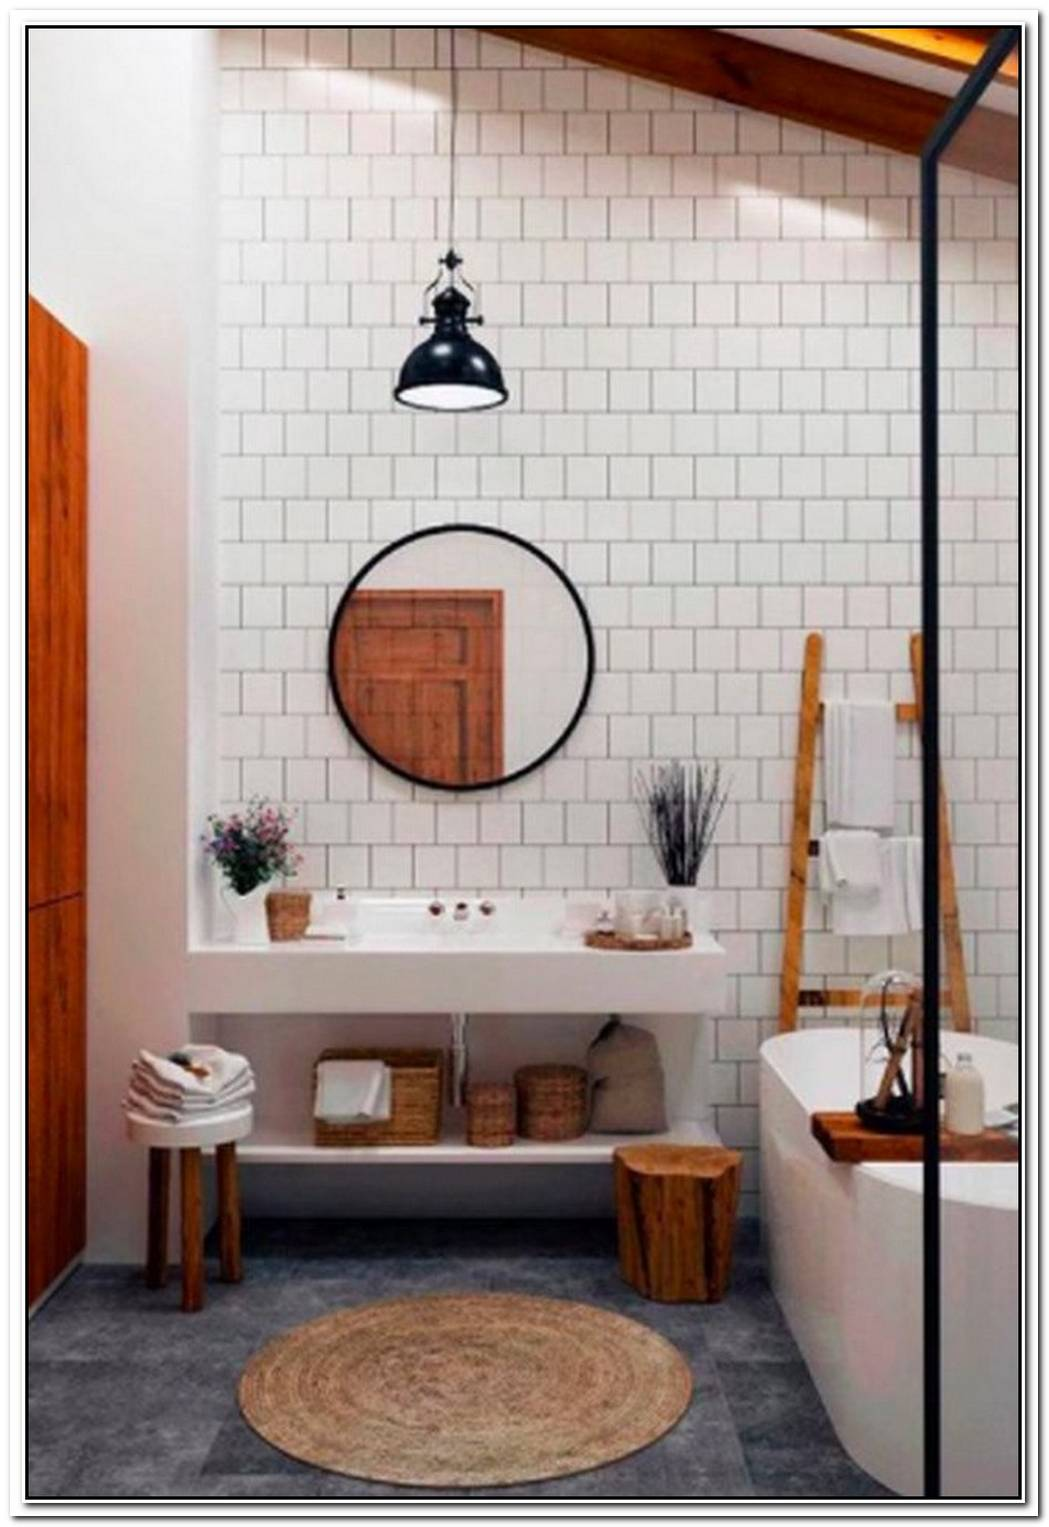 White And Wood Make For A Chic, Homespun Bathroom